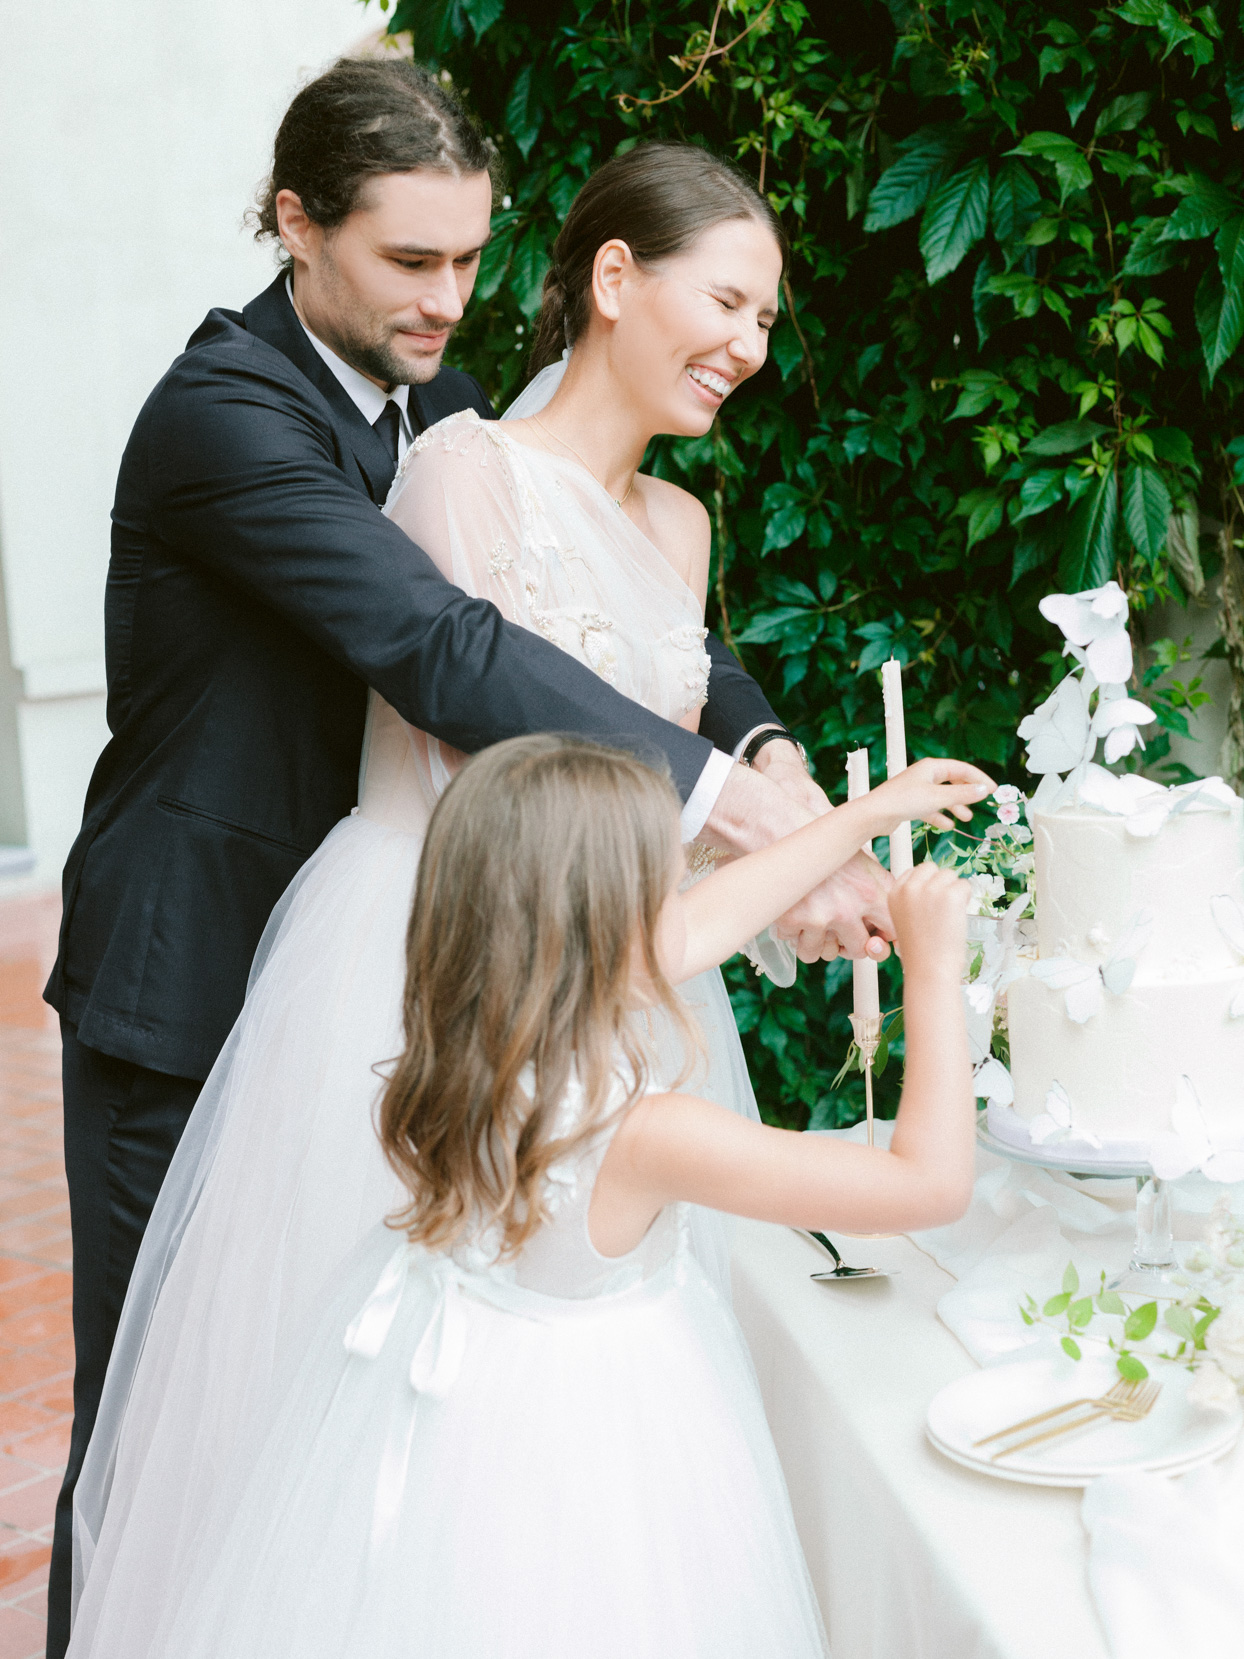 bride, groom, and daughter cutting wedding cake together